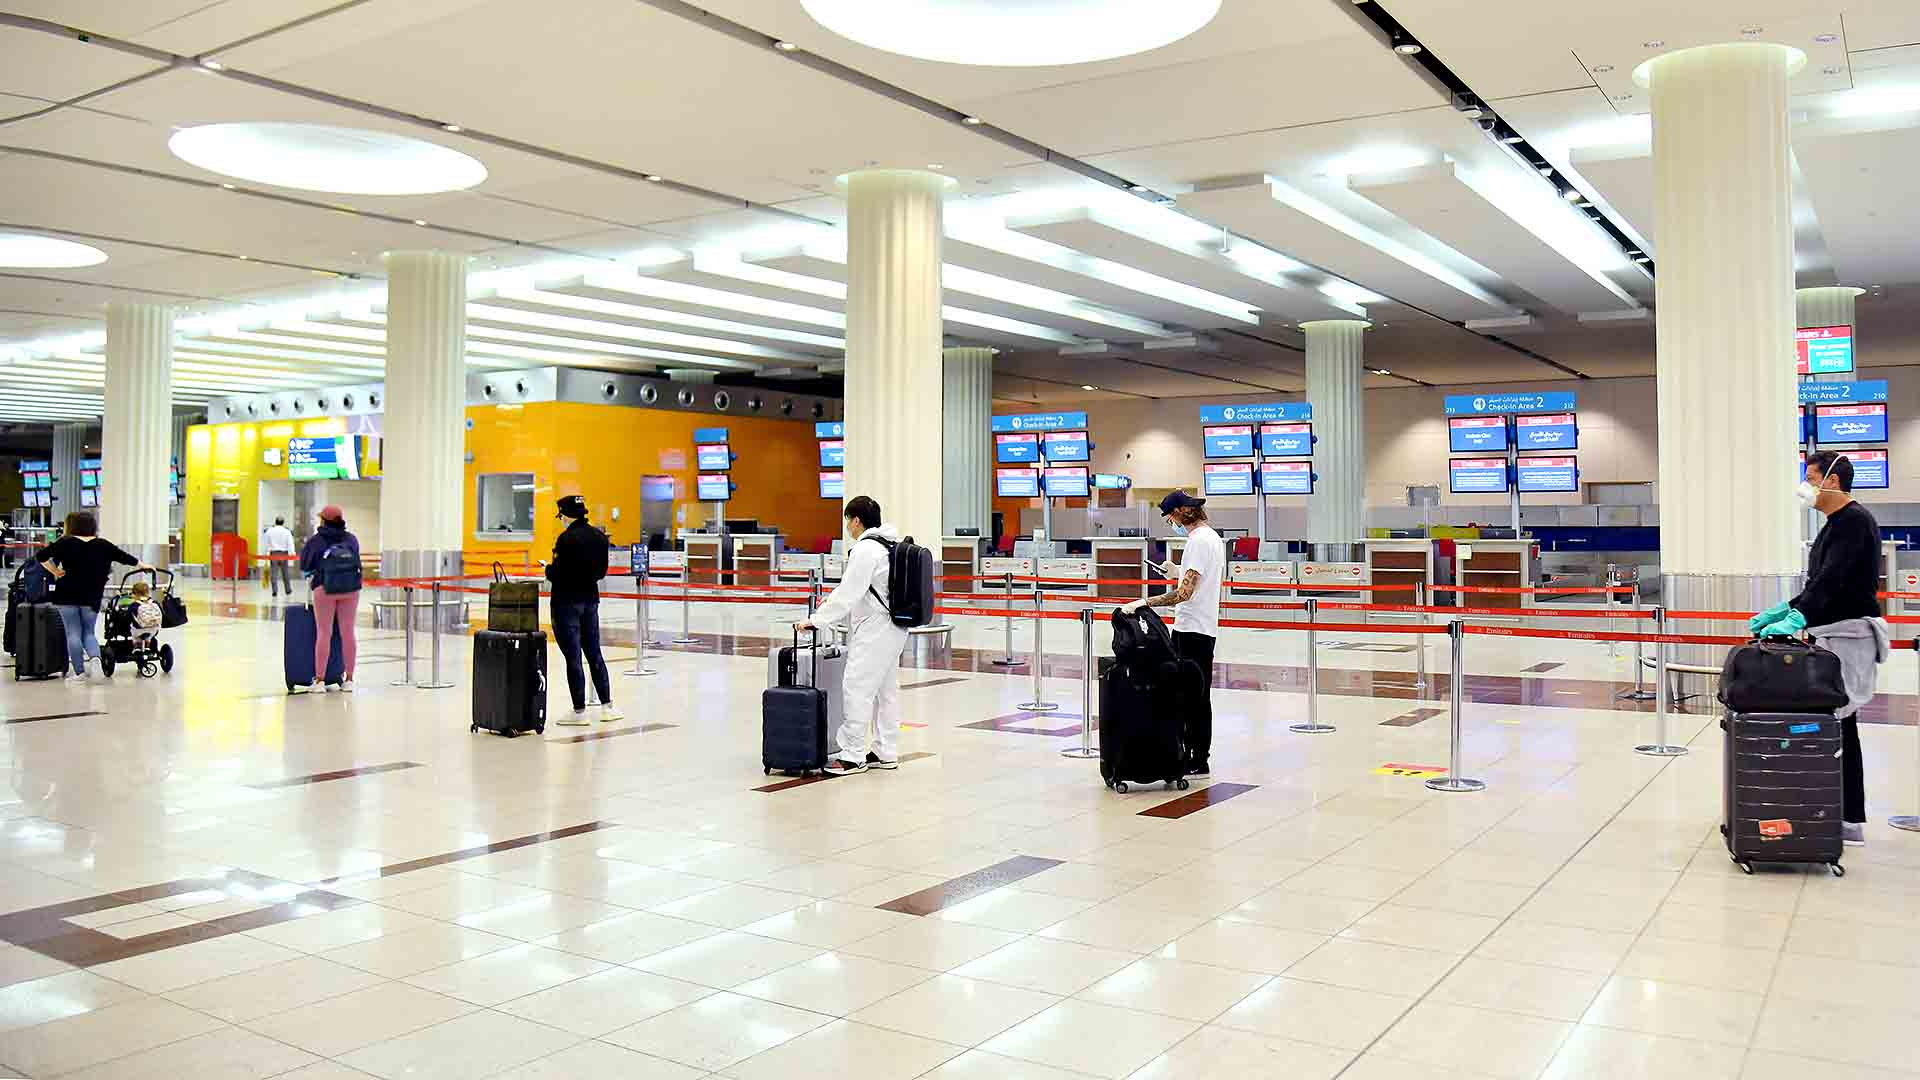 At Dubai International Airport, physical distancing indicators have been placed on the ground and at waiting areas.